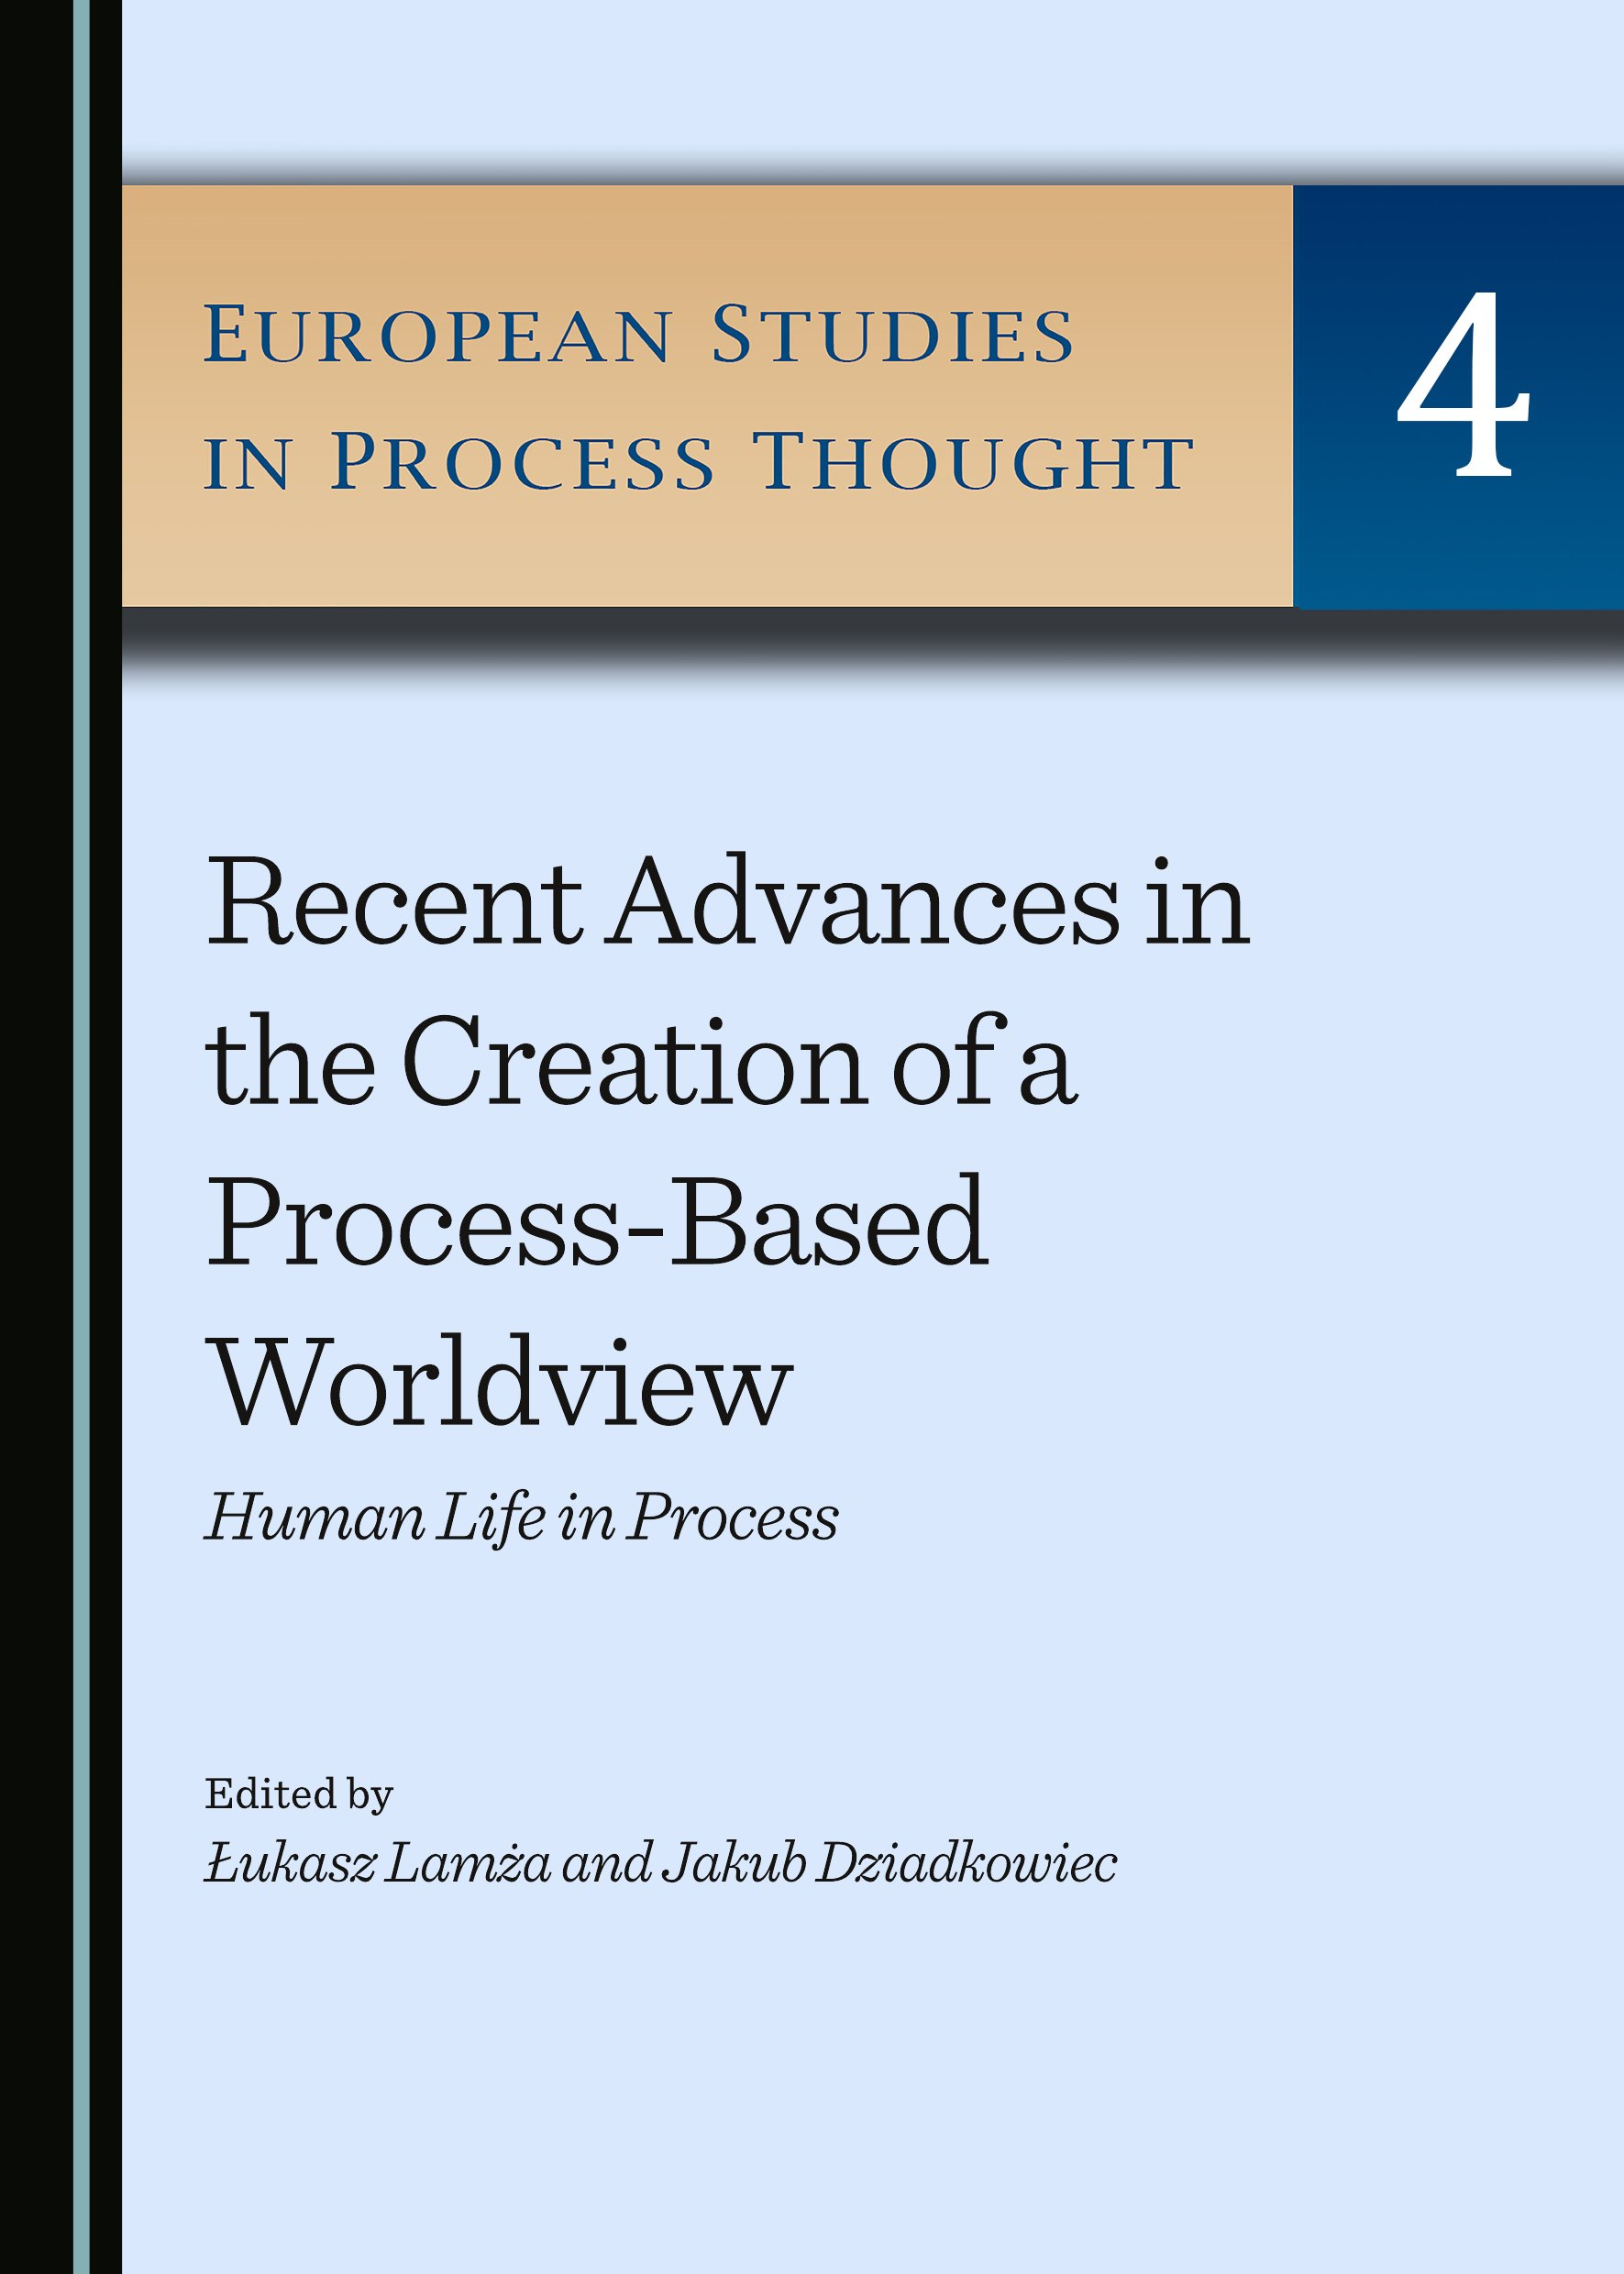 Recent Advances in the Creation of a Process-Based Worldview: Human Life in Process